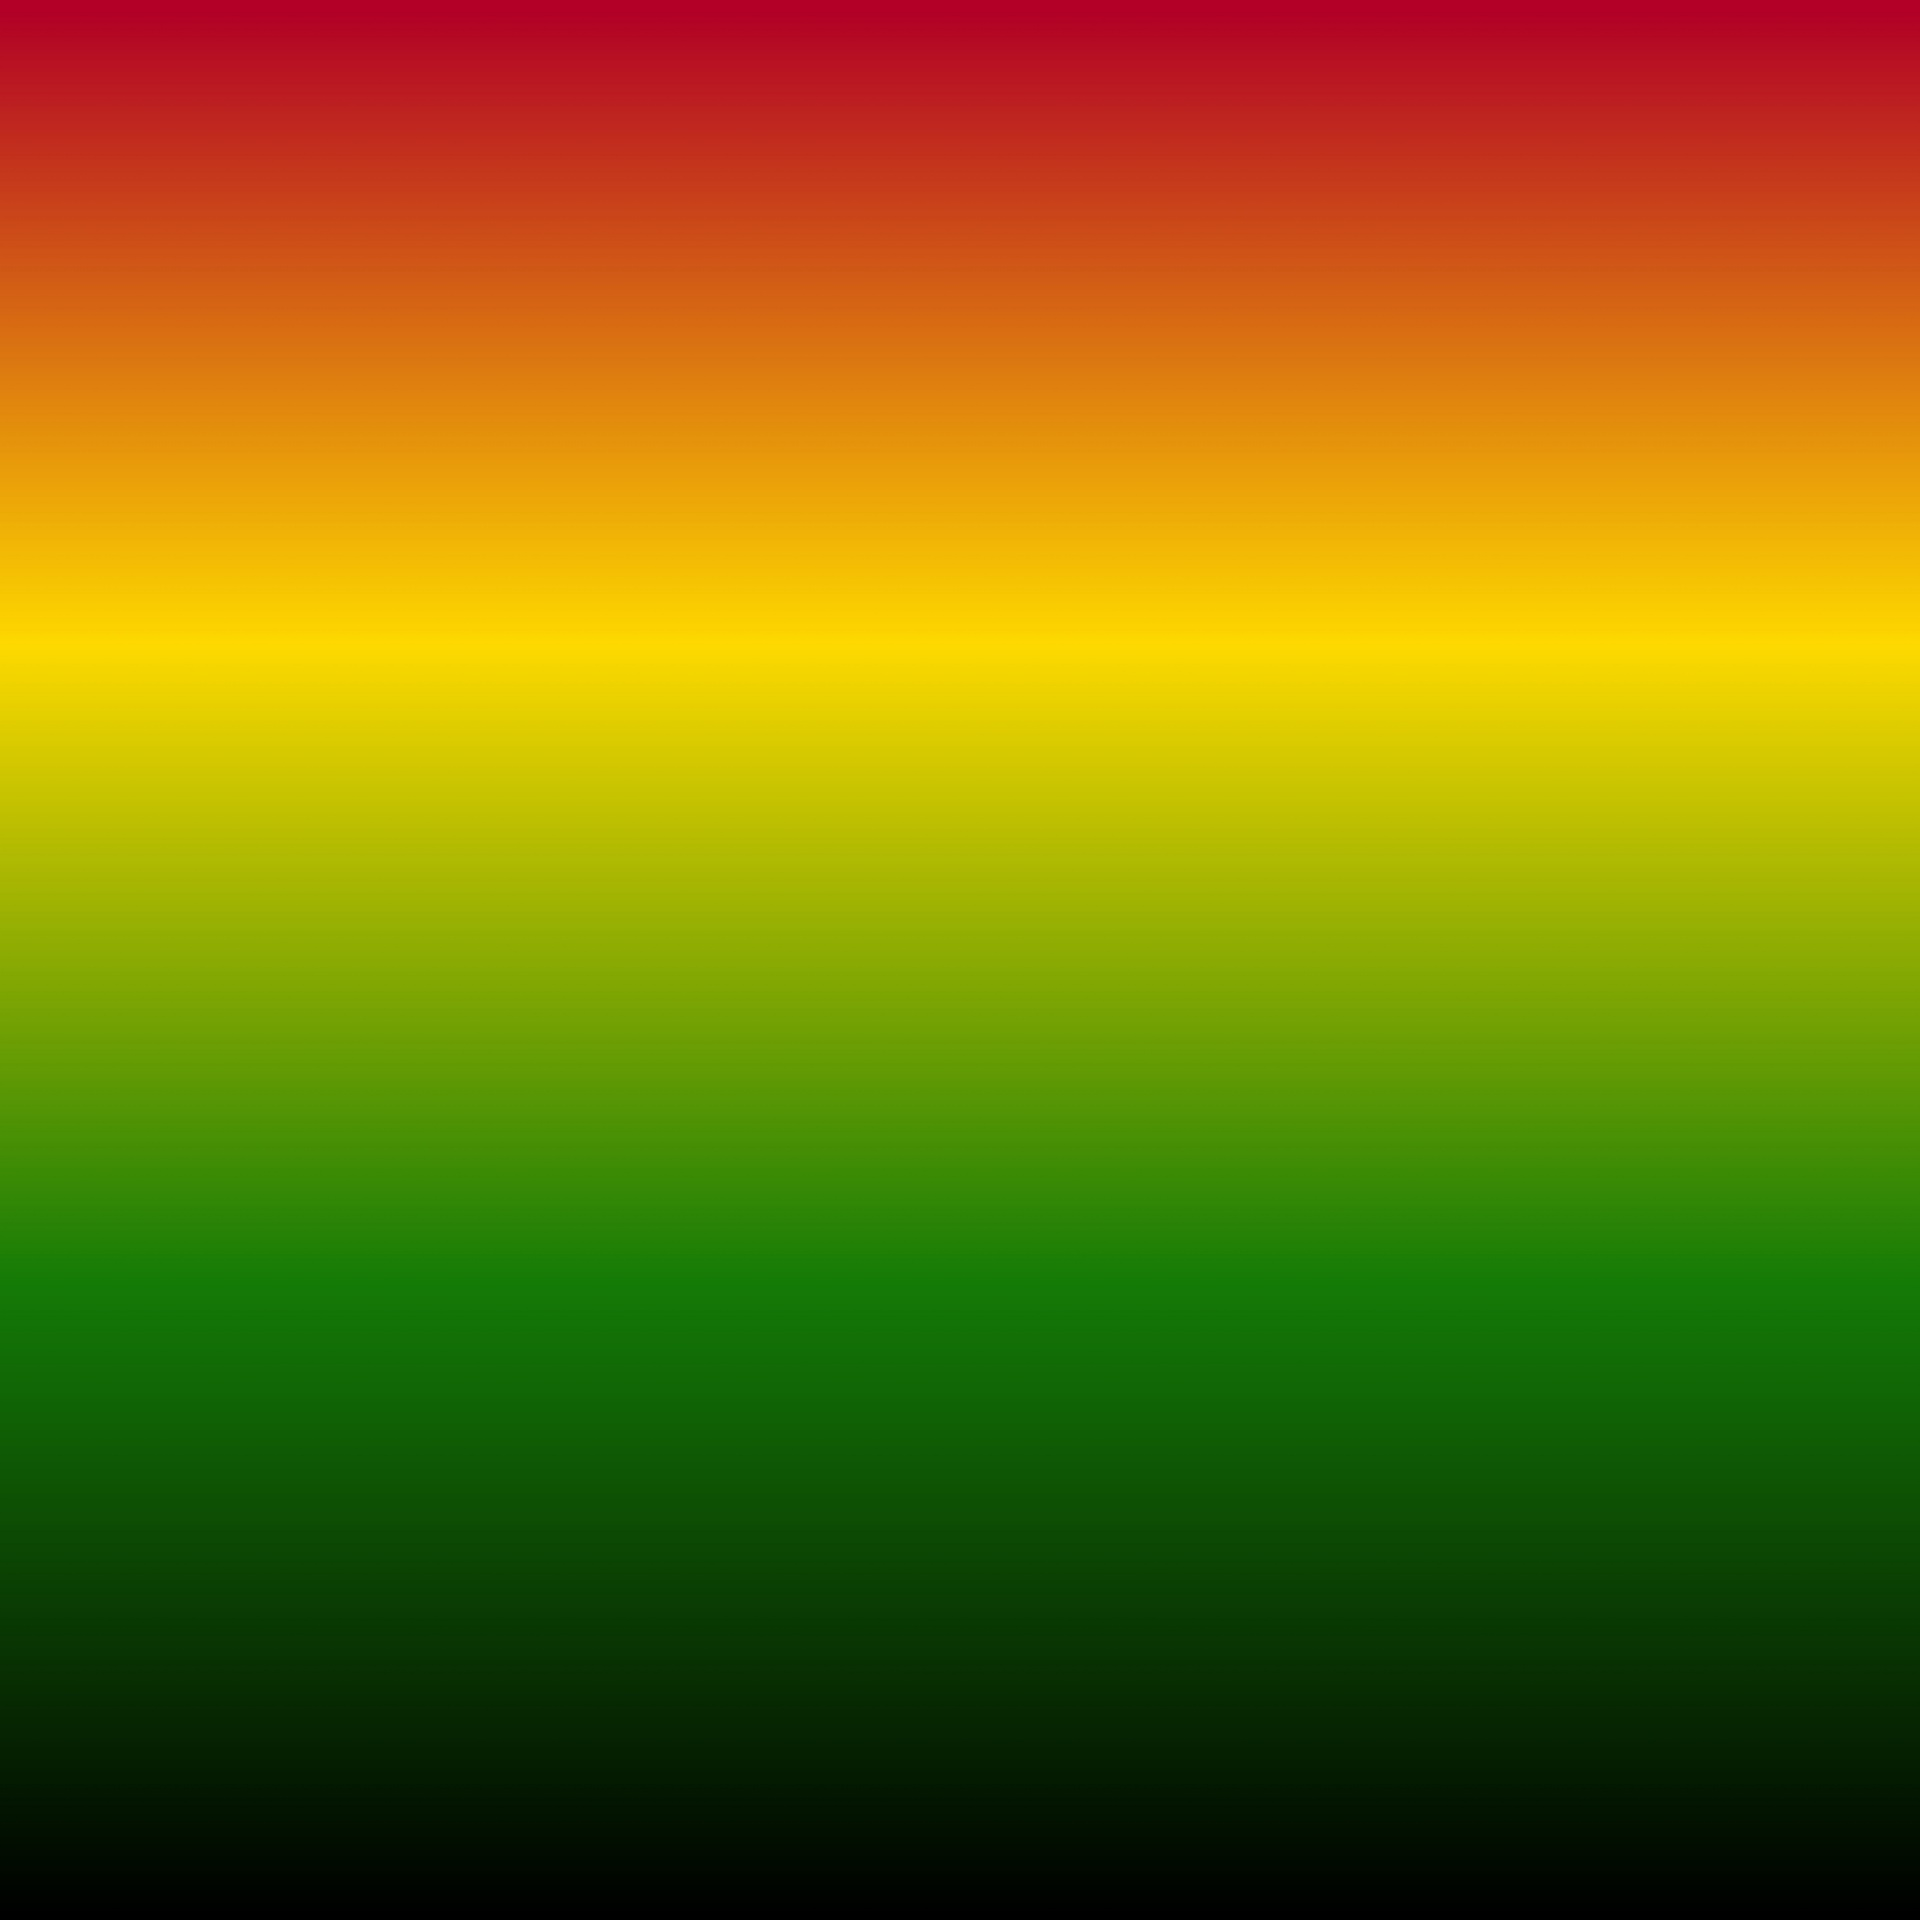 Wallpaper Background Red Yellow Green